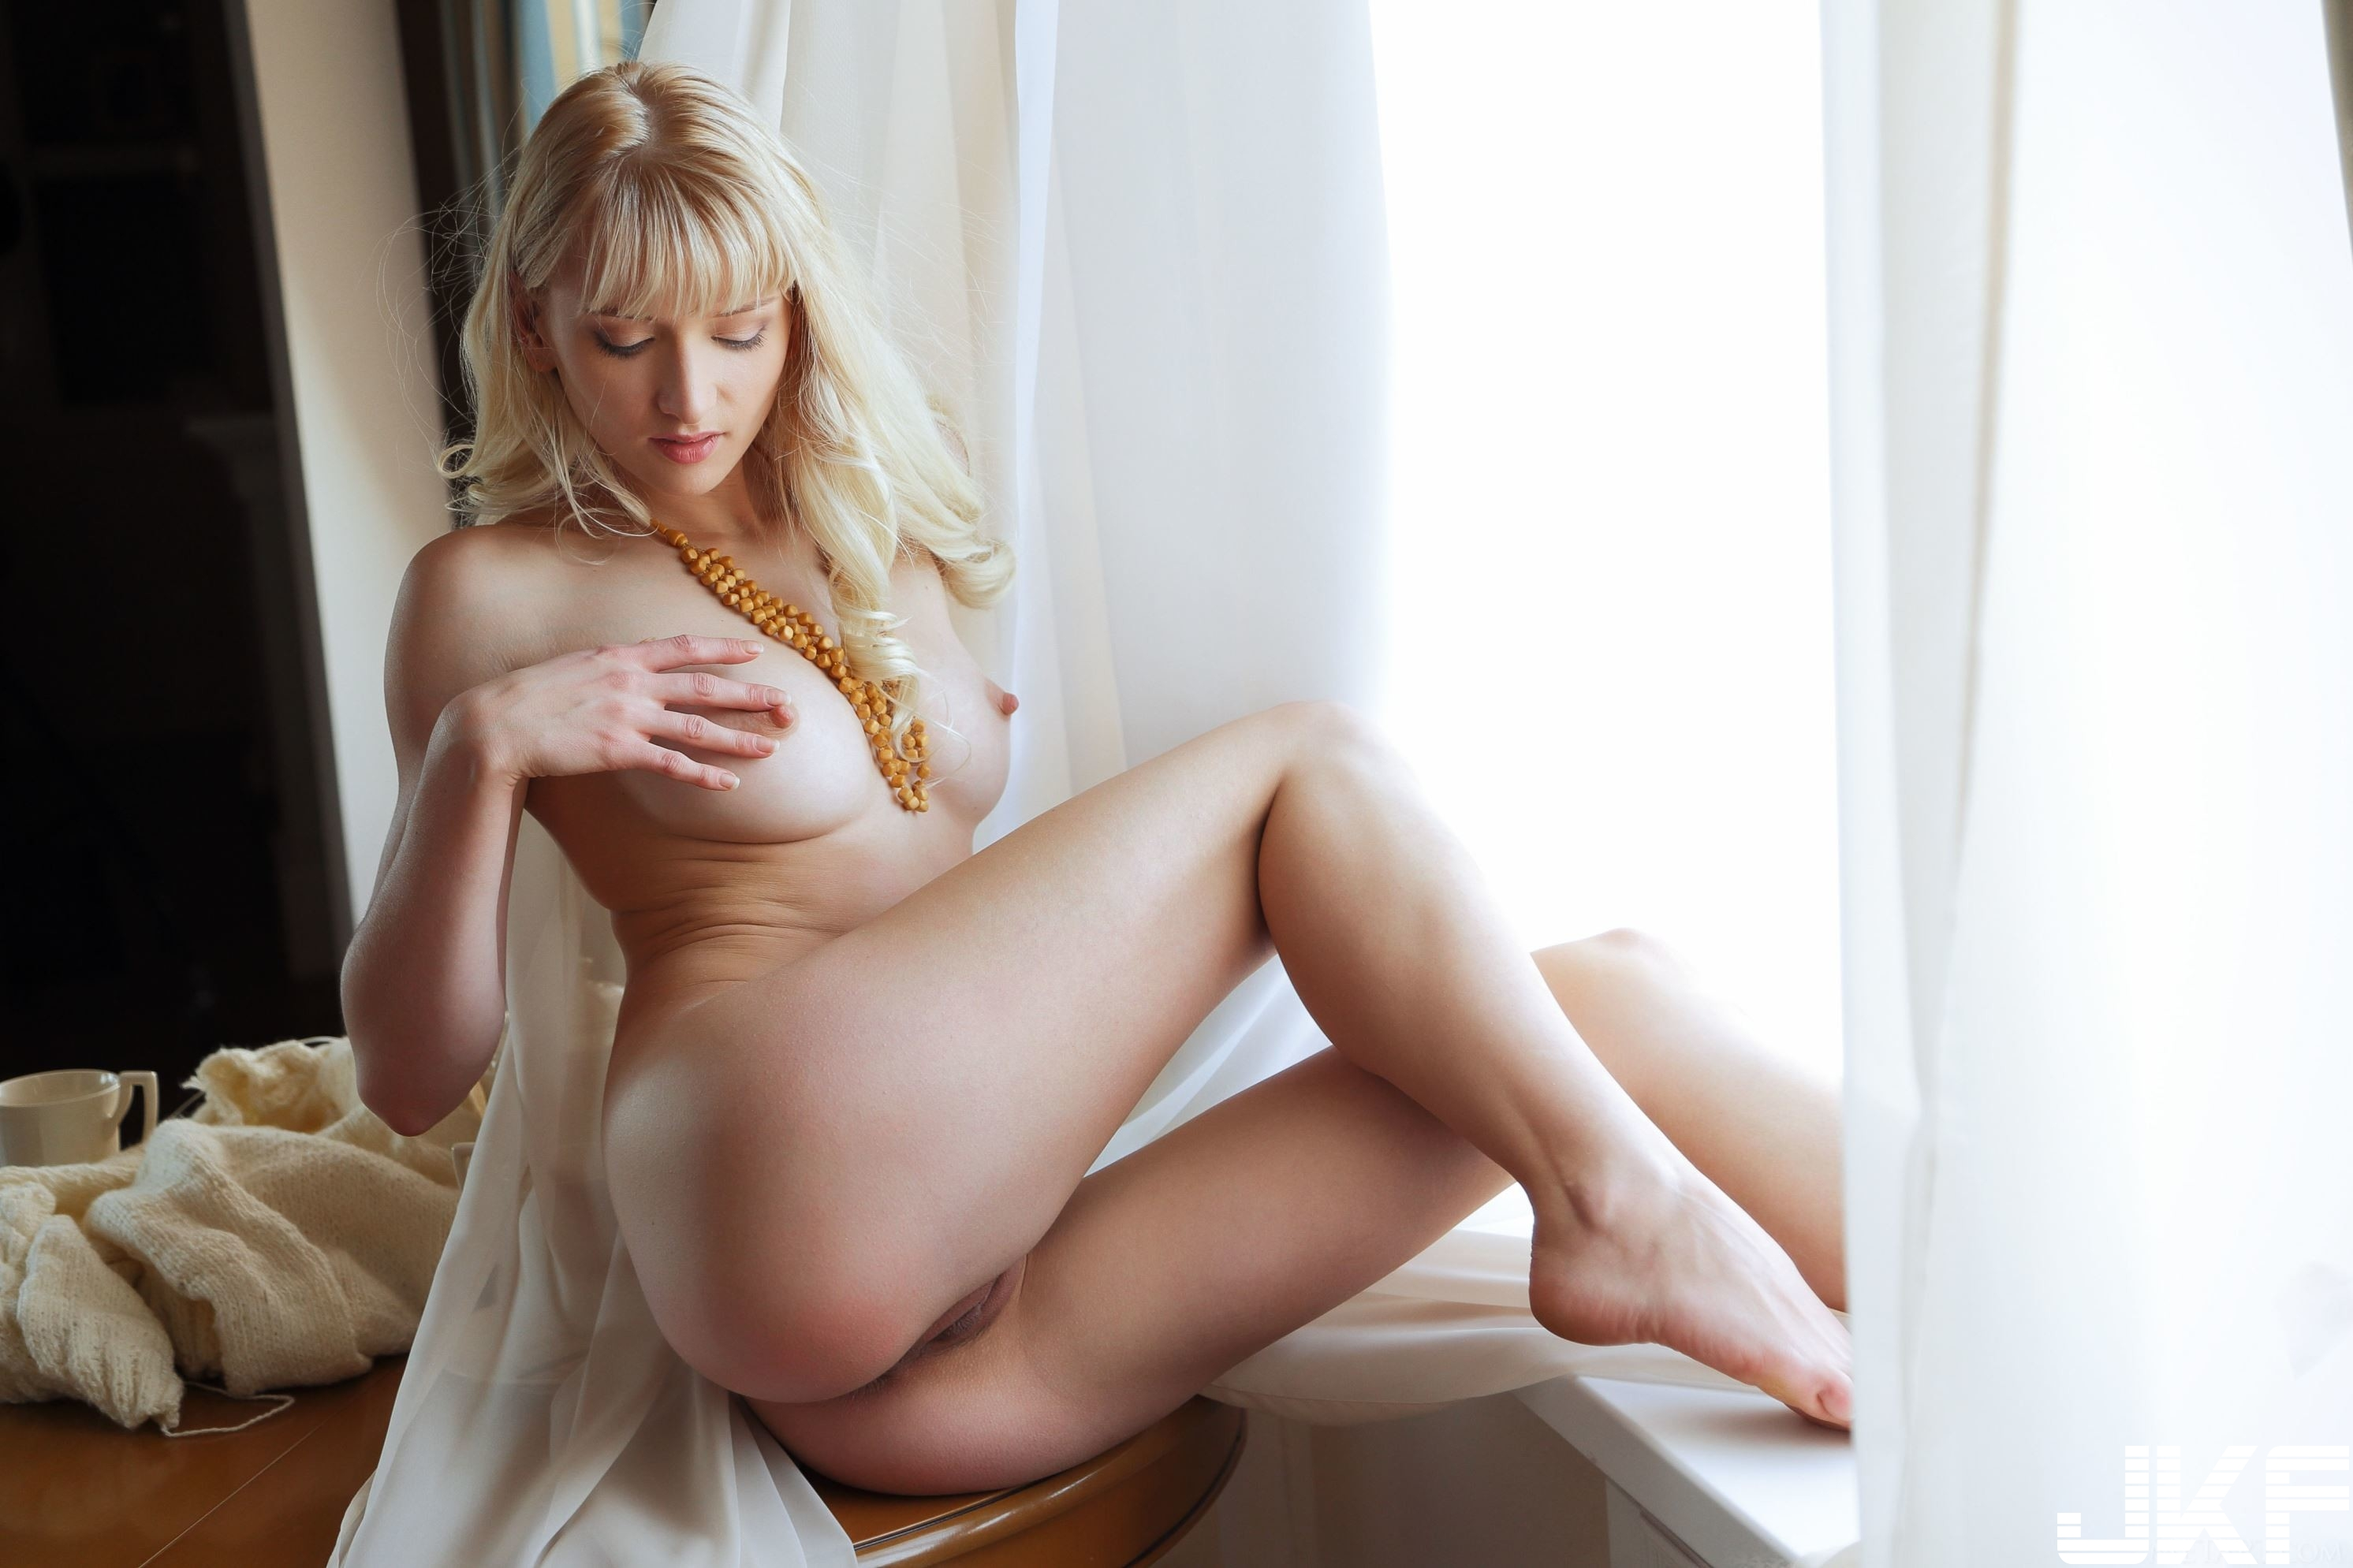 Shaved-Blonde-Adelia-B-with-Open-Pussy-b1 (19).jpg